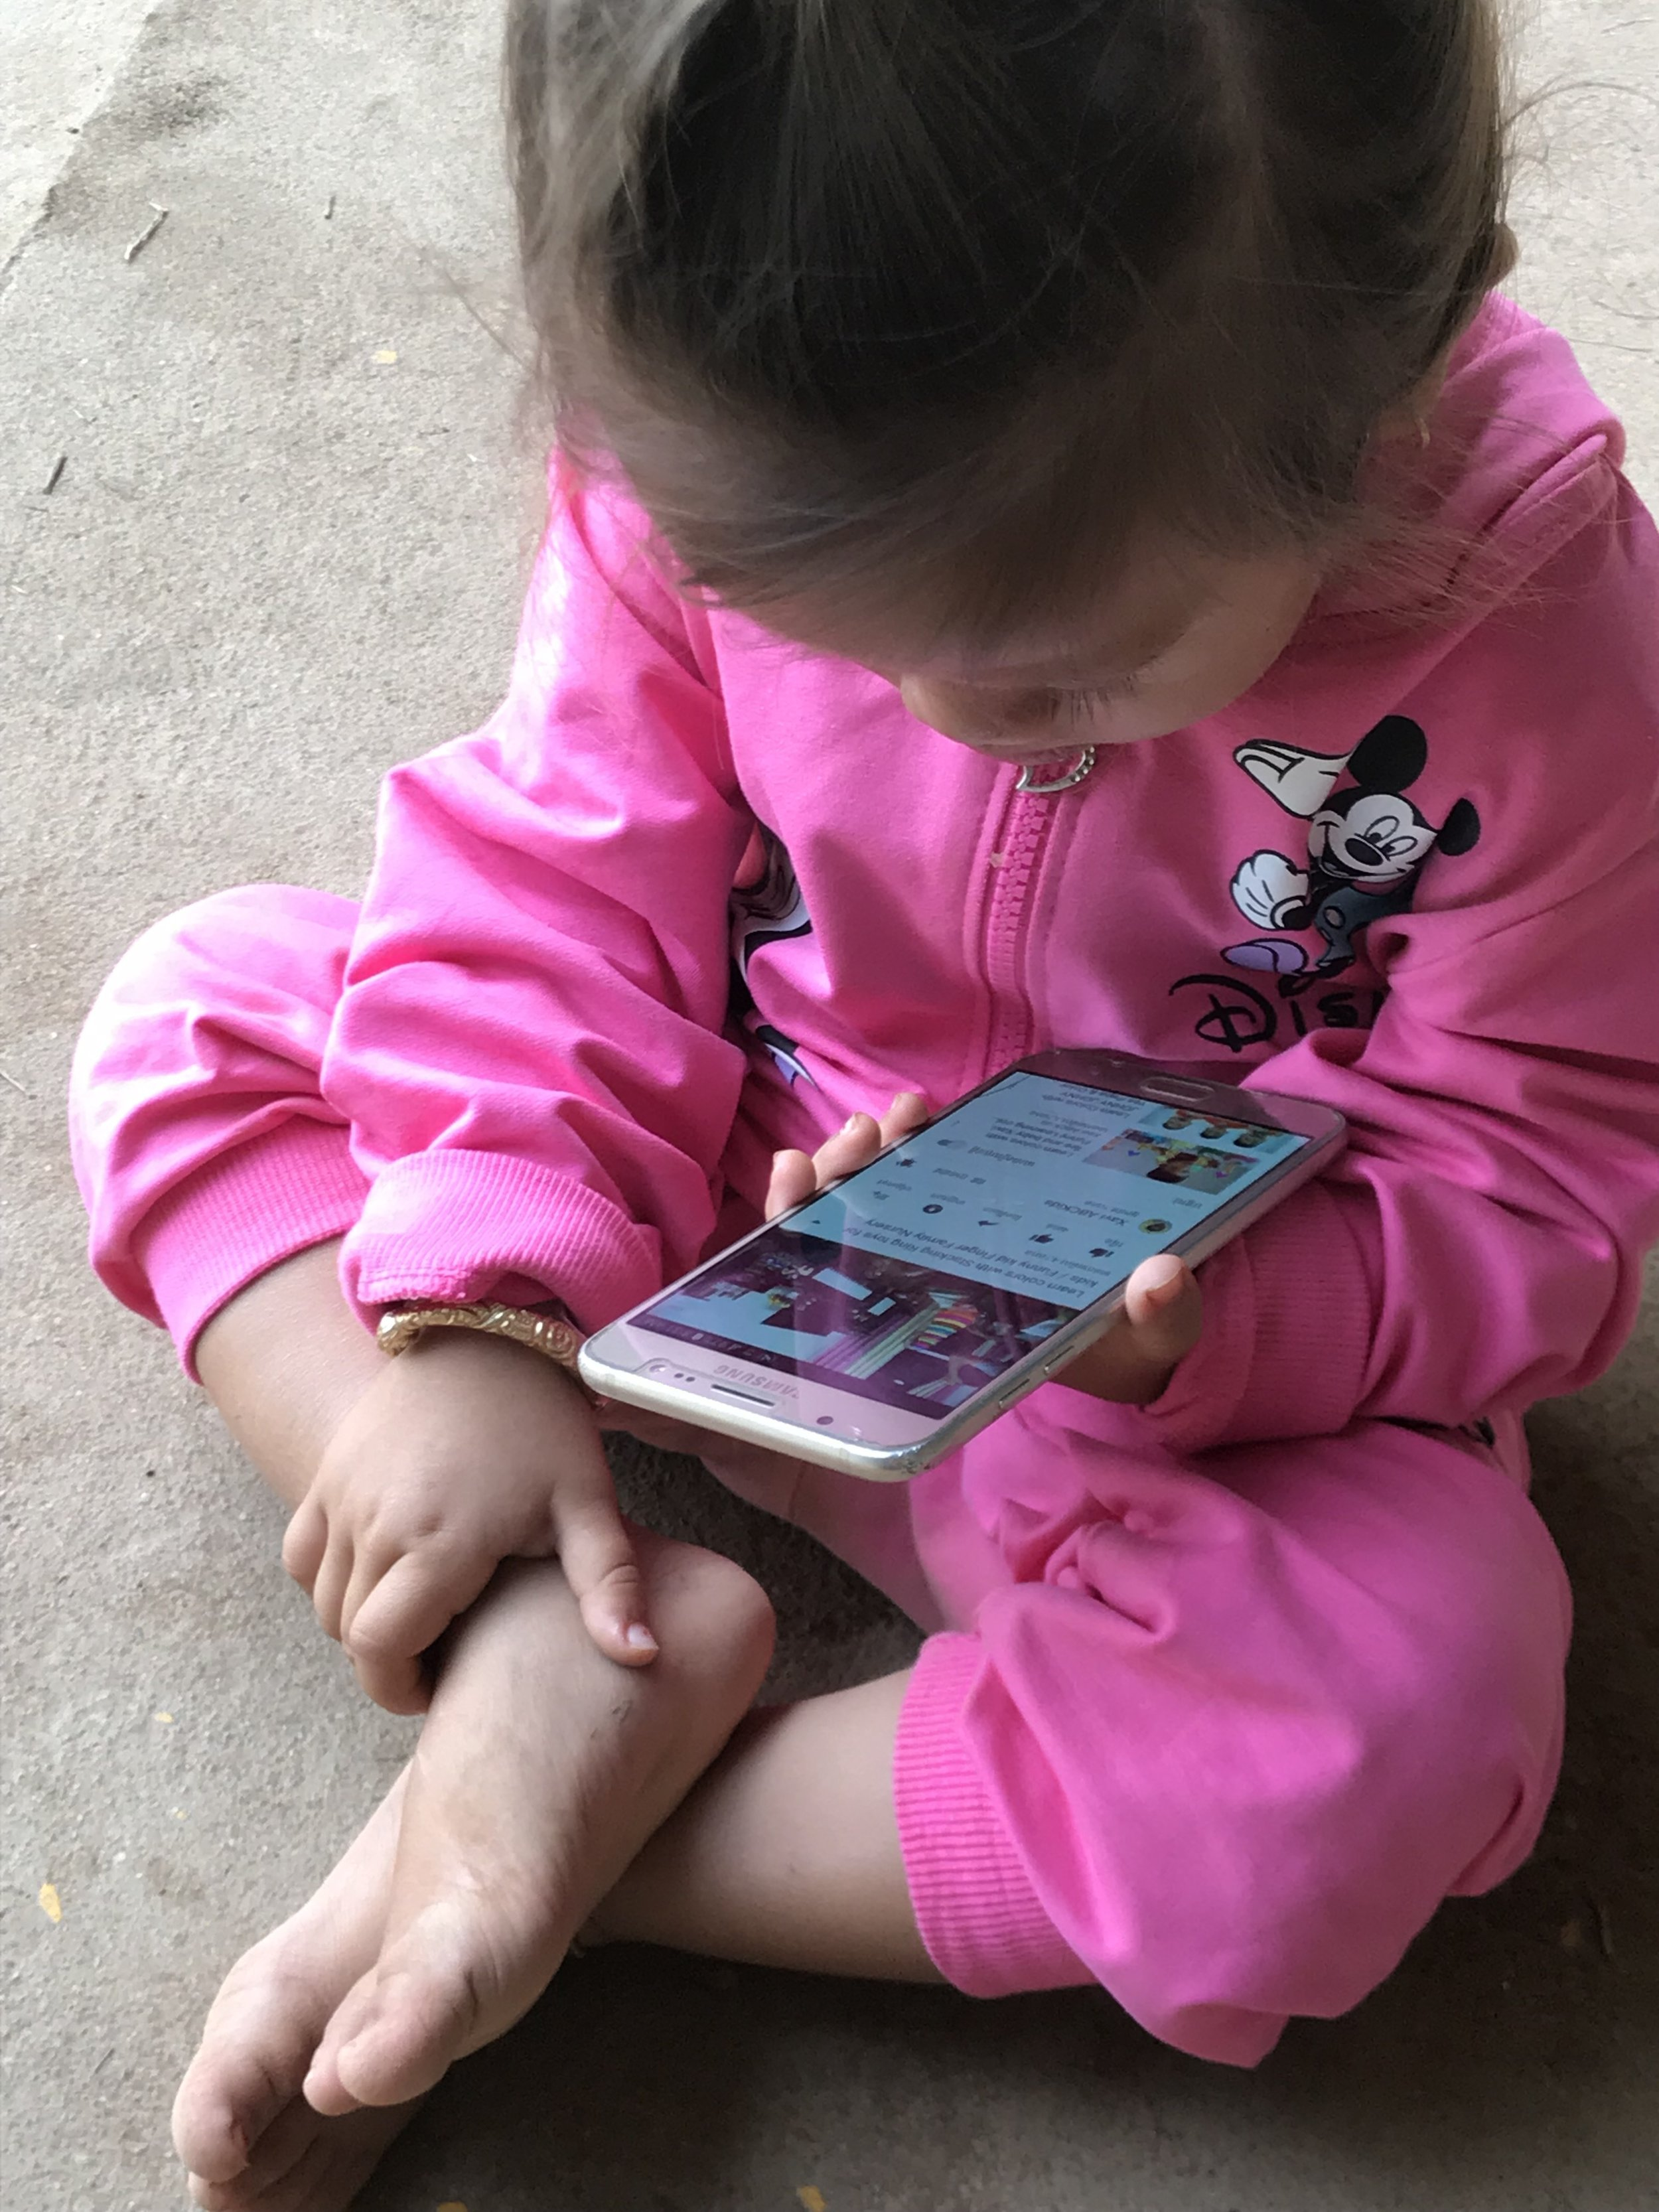 Cambodia - toddler with iphone.JPG